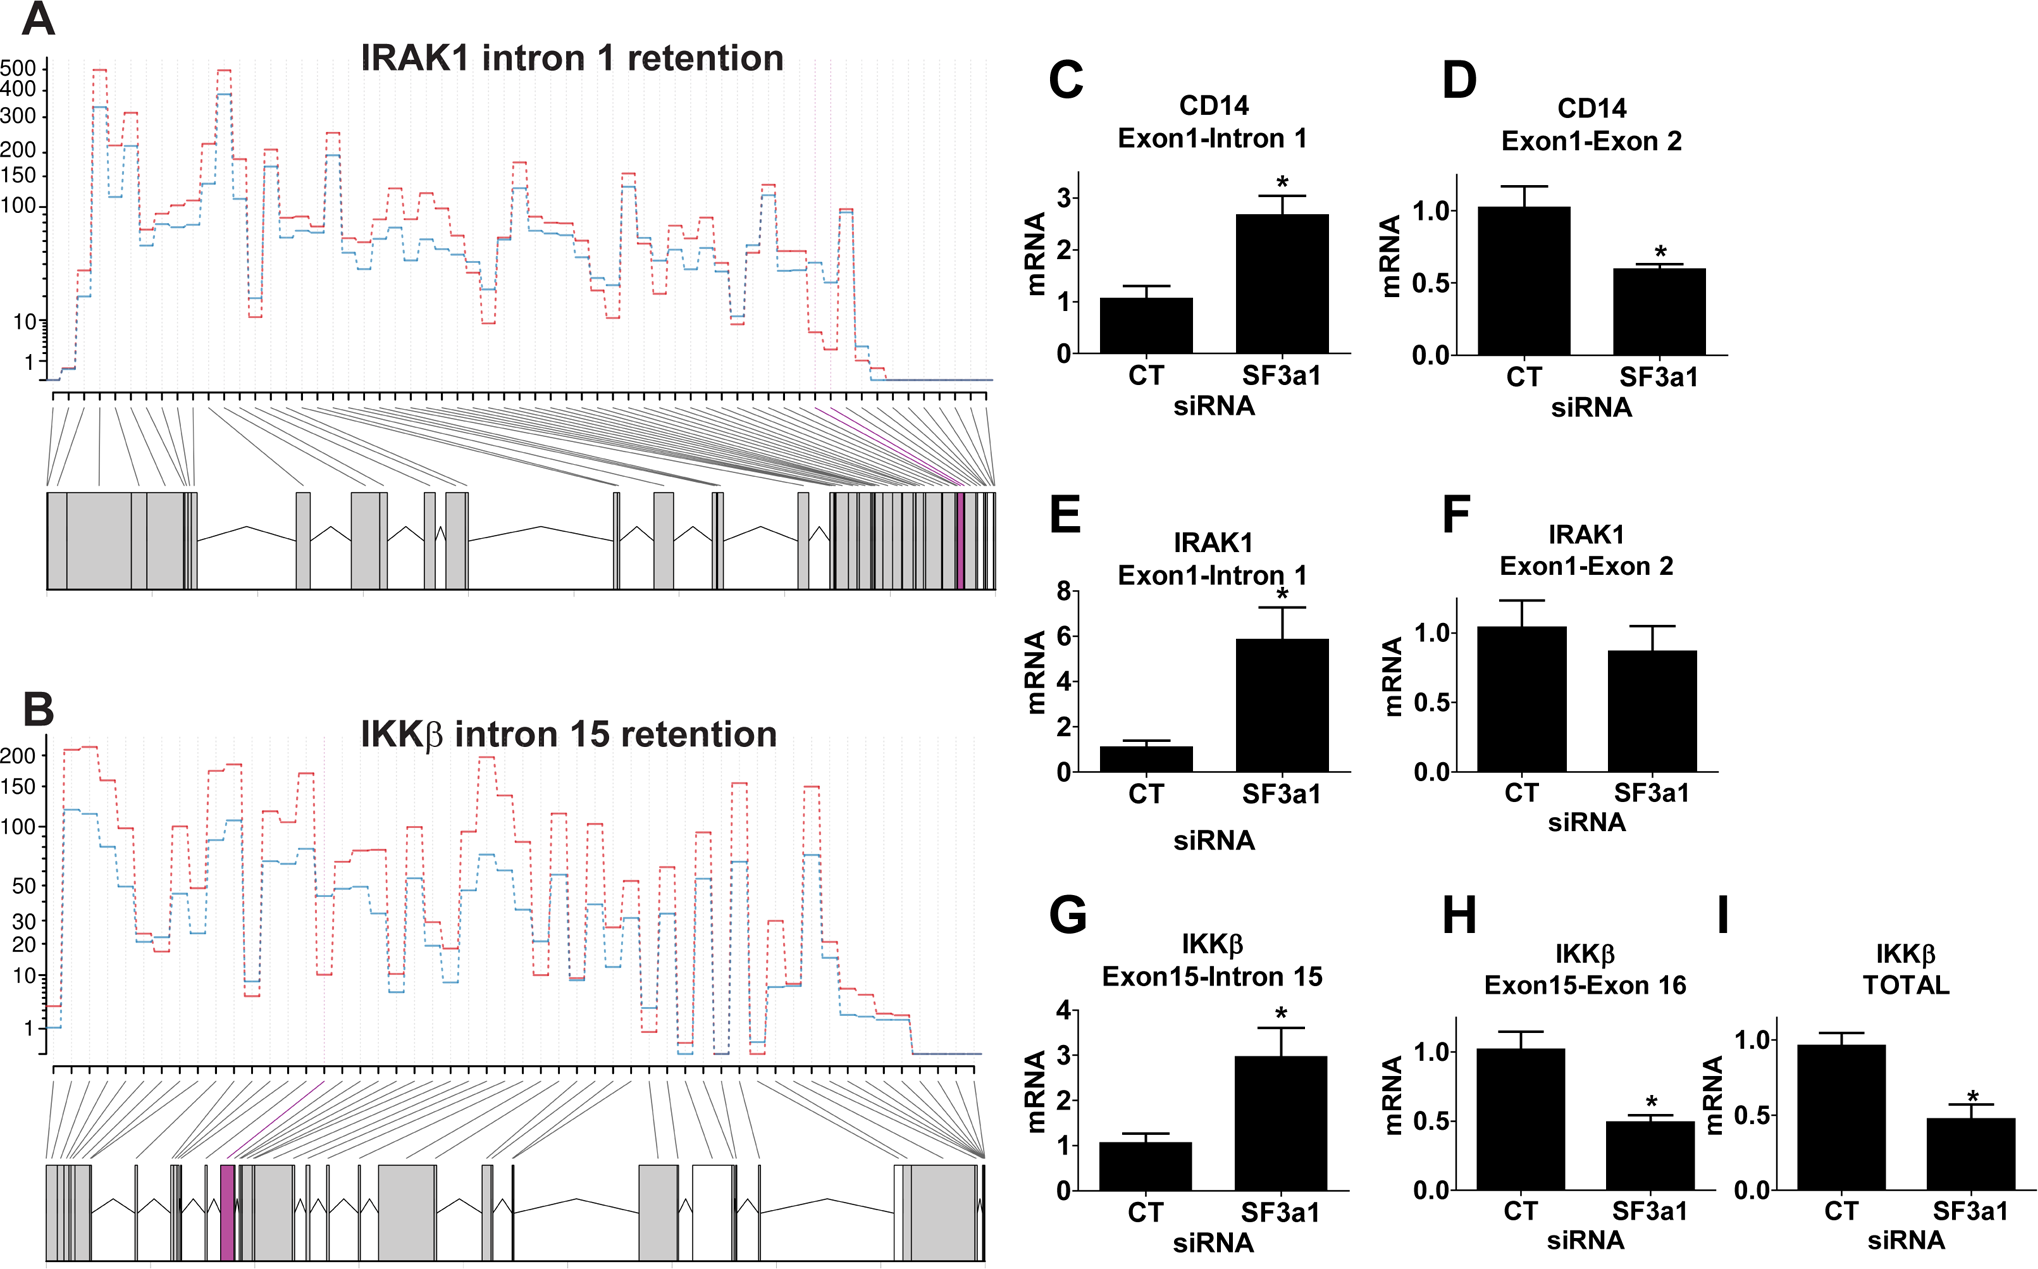 SF3a1 inhibition leads to intron retention in several TLR signaling pathway genes.